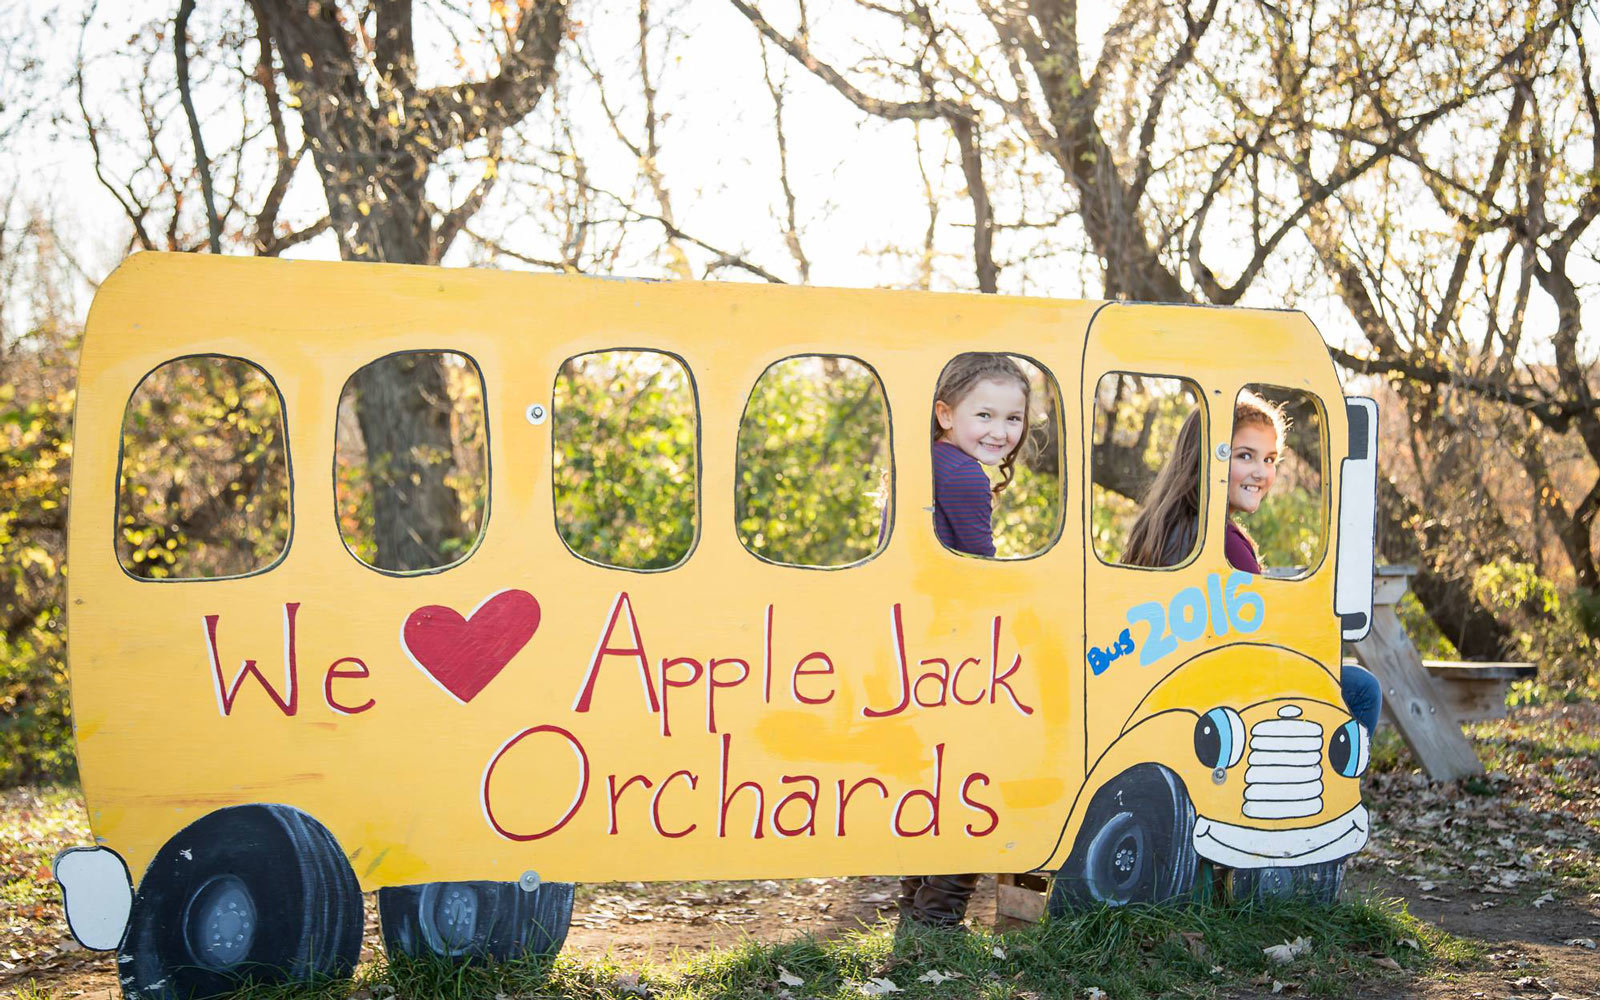 Apple Jack Orchards